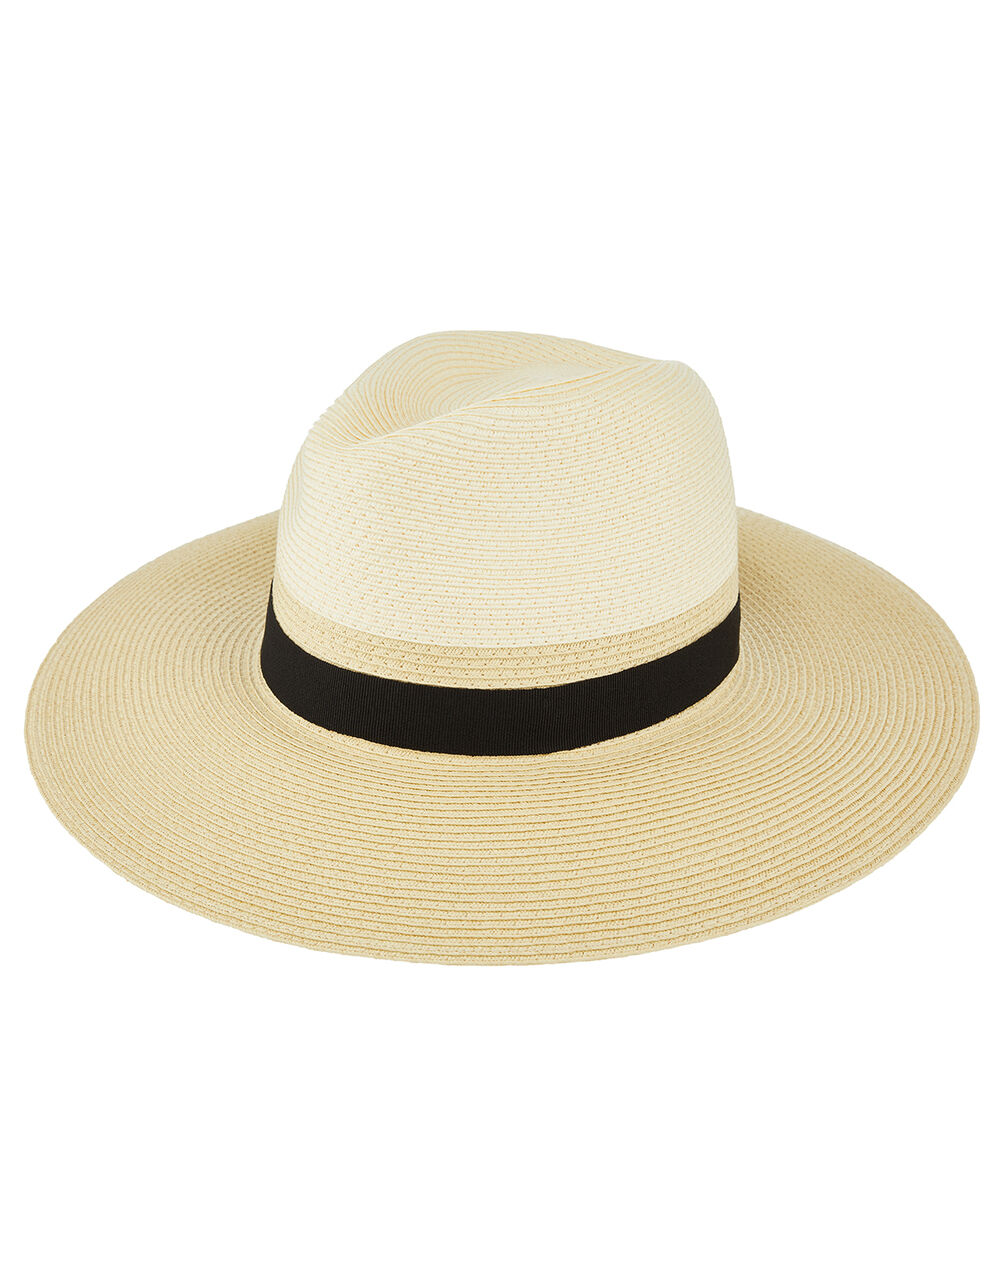 Two Tone Fedora Hat, Natural (NATURAL), large